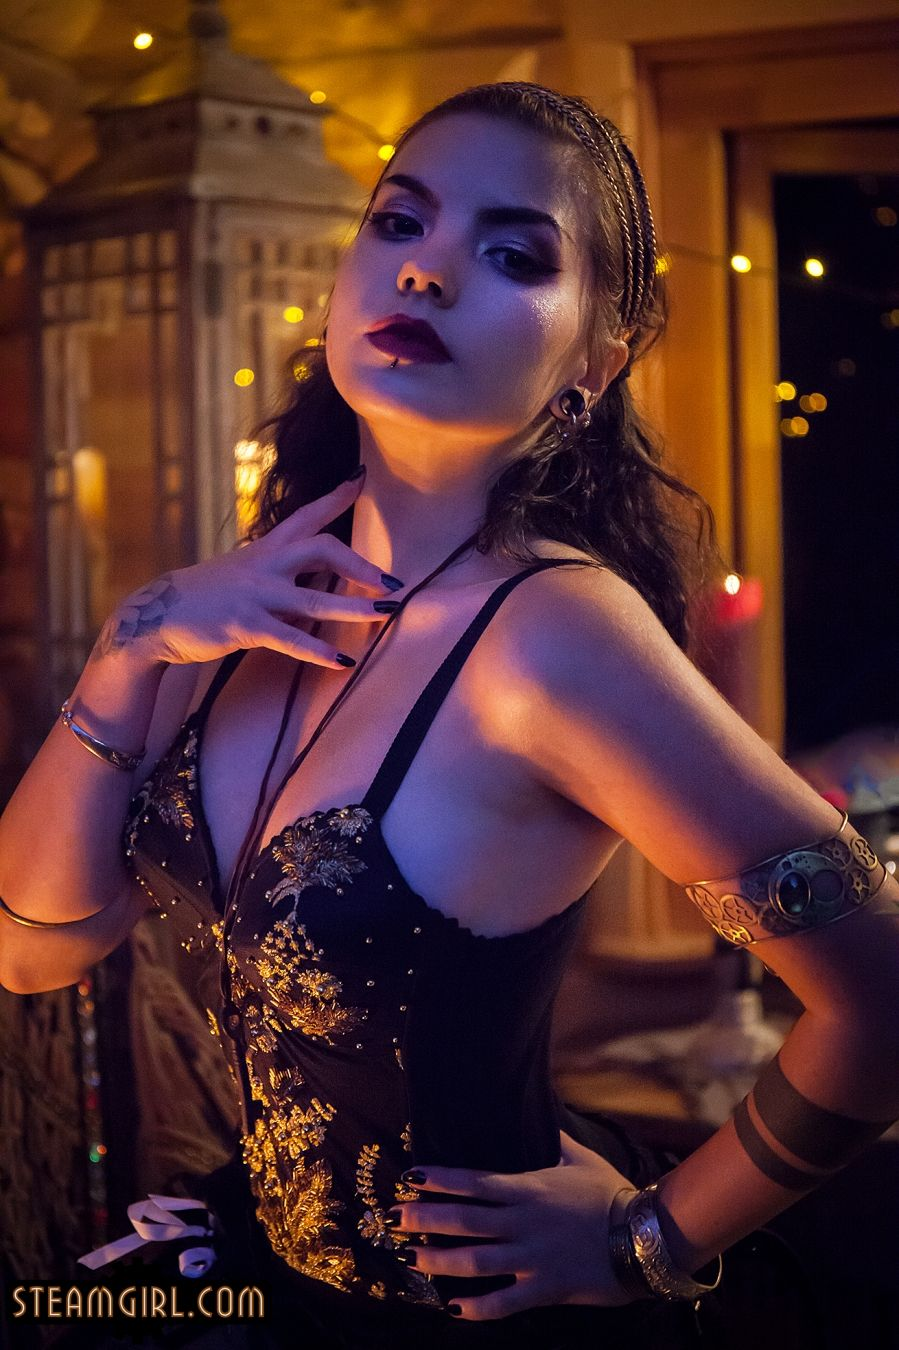 Steamgirl.com | Steampunk and Neo Victorian erotic photography by Kato -  Gypsy Firedance Tour - Gypsy Firedance Tour